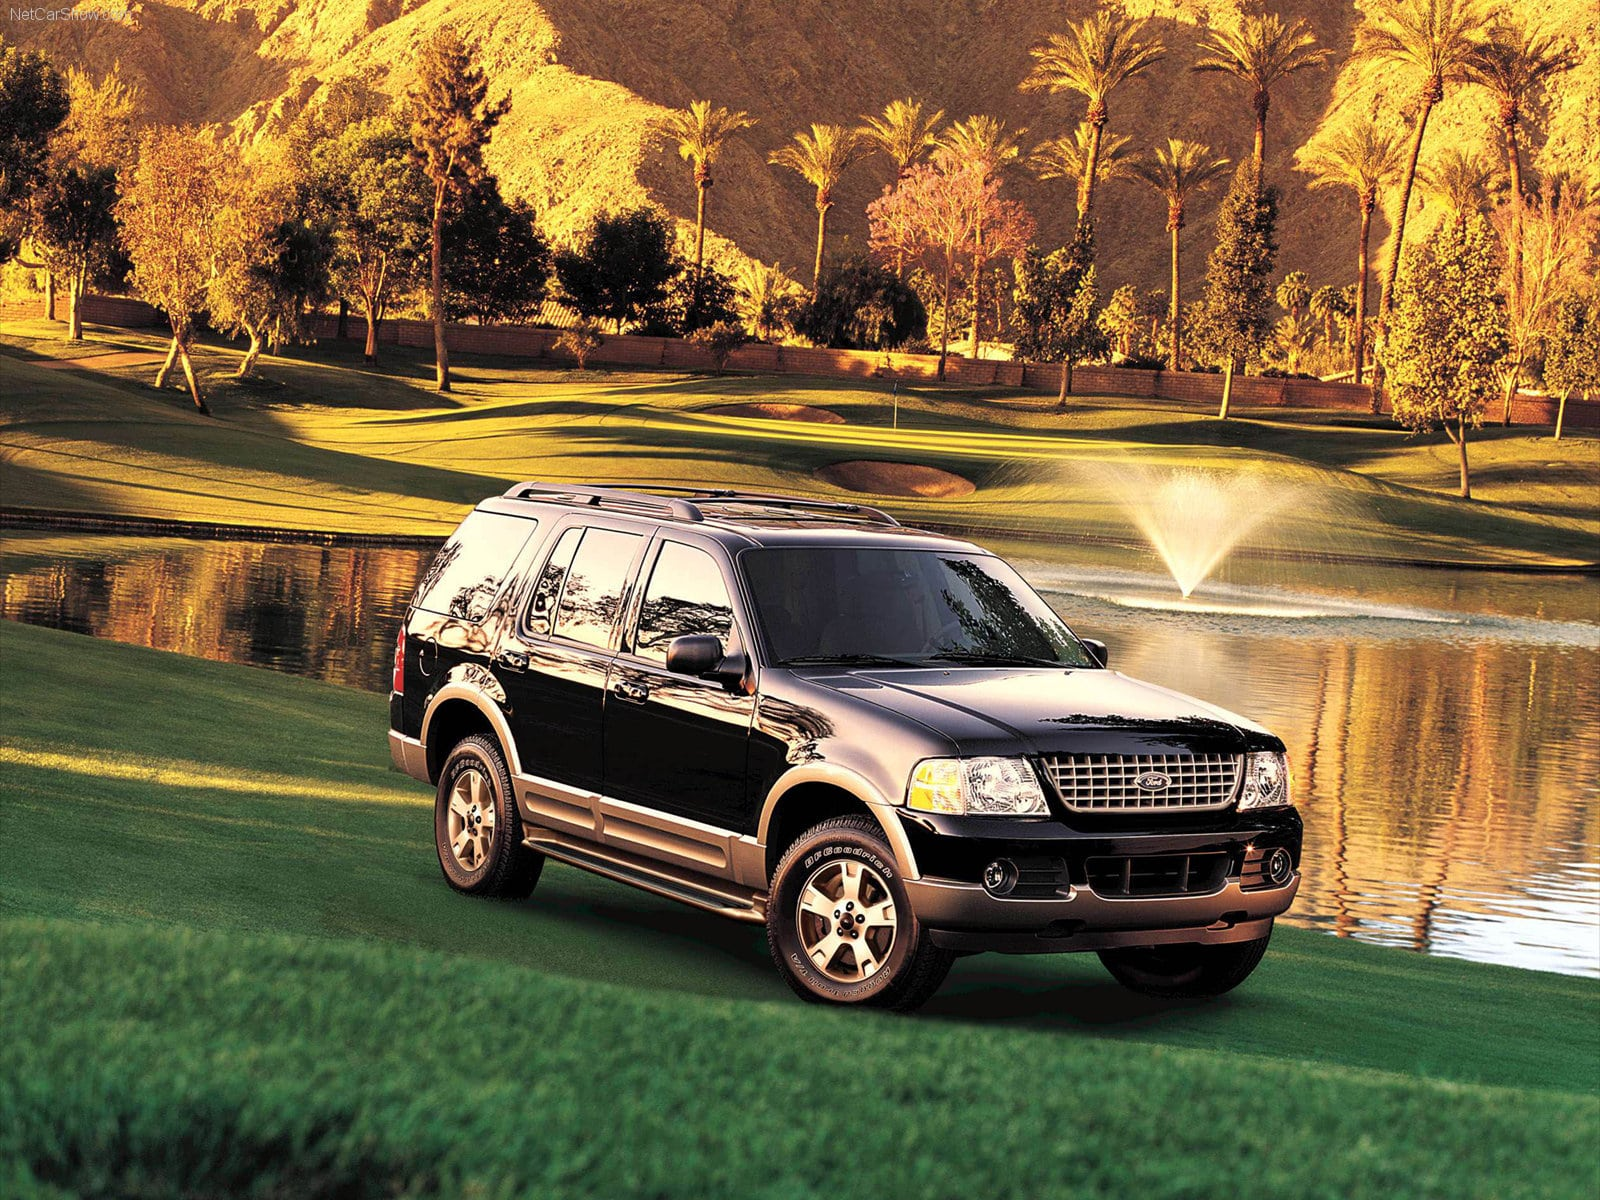 Ford Explorer Widescreen for desktop